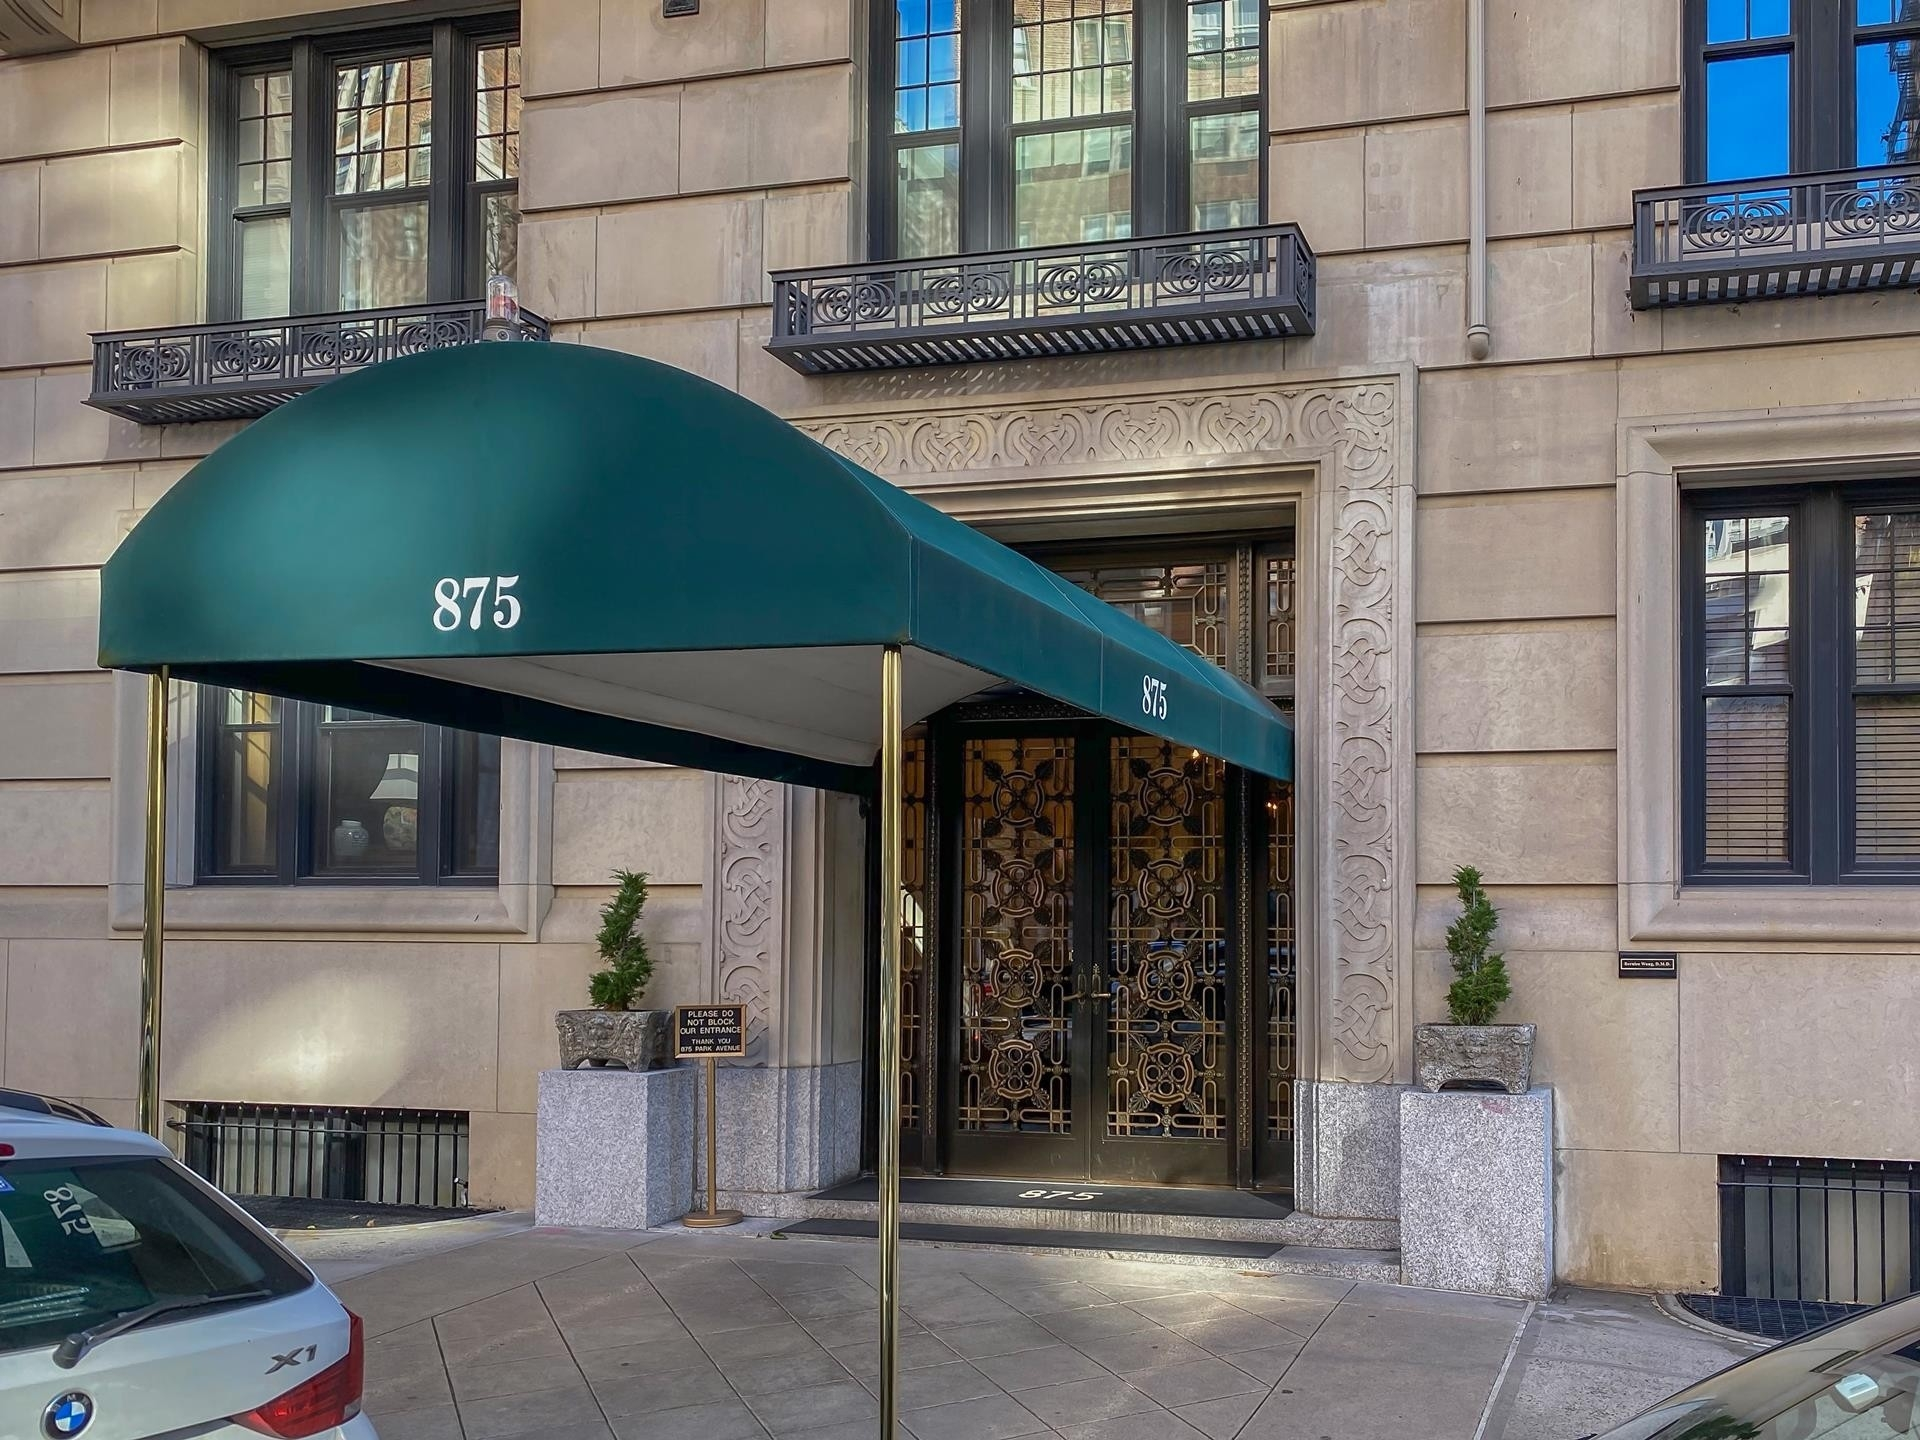 1. building at 875 Park Avenue, Upper East Side, New York, NY